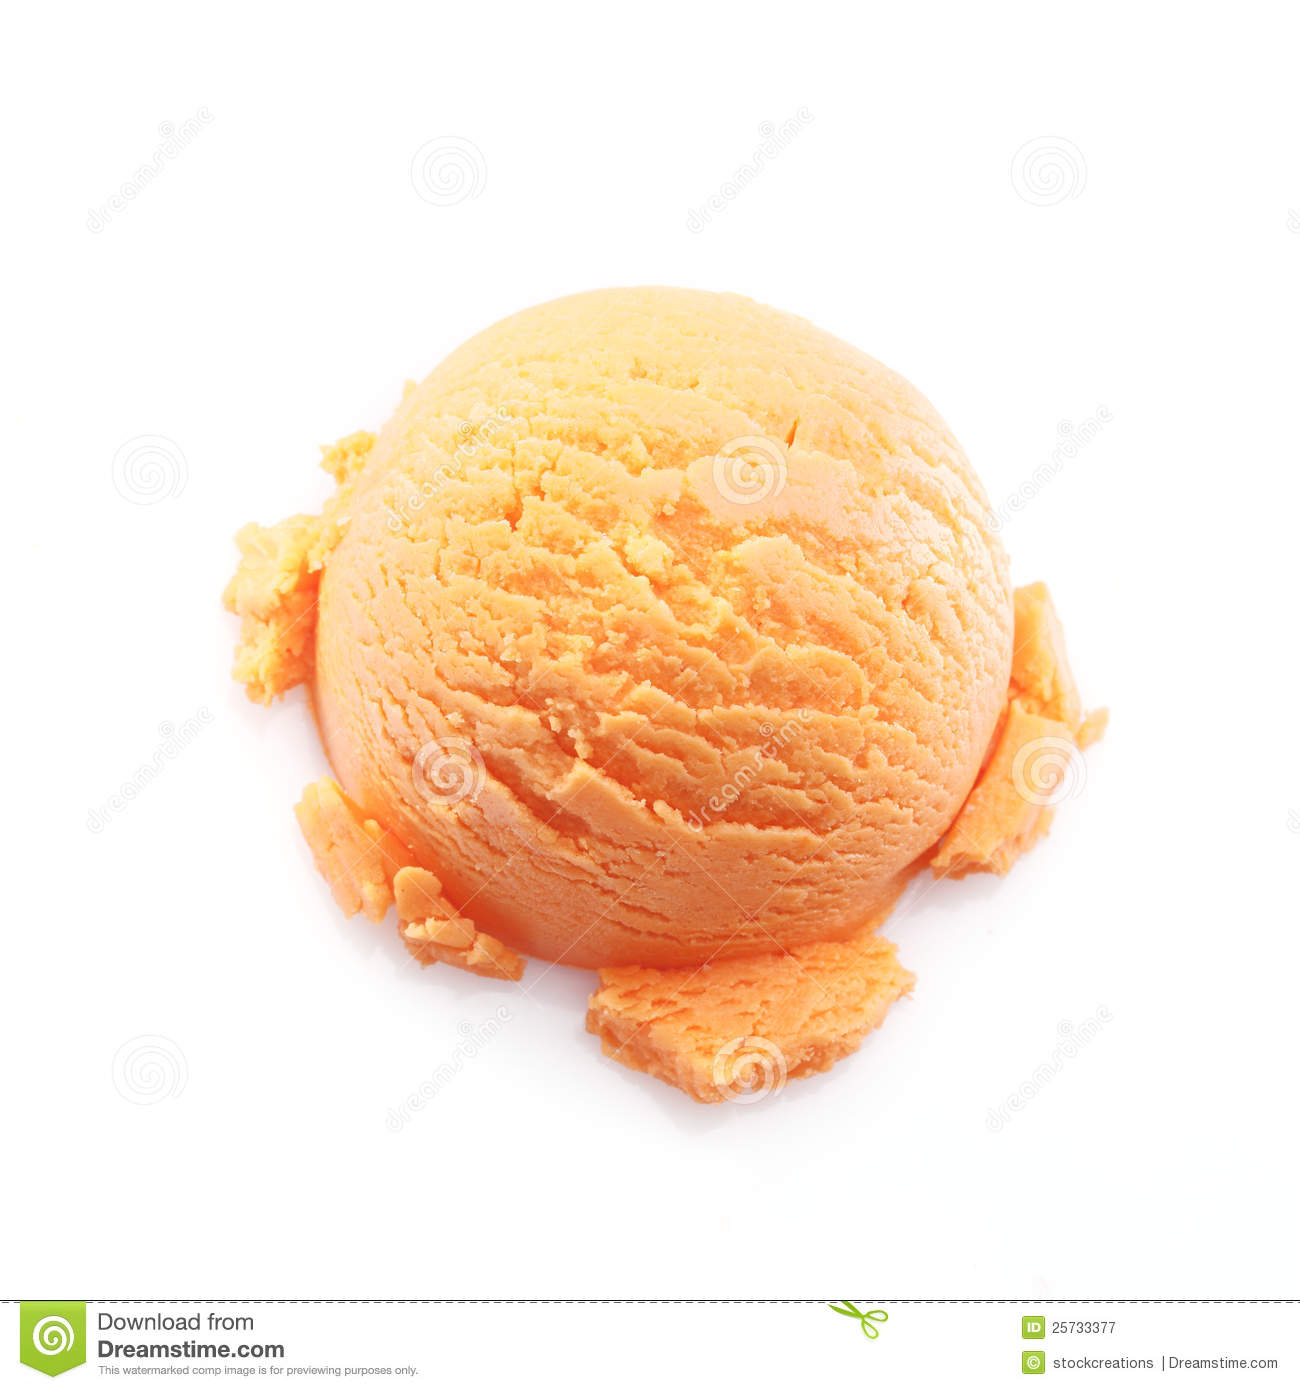 Isolated scoop of mango ice cream